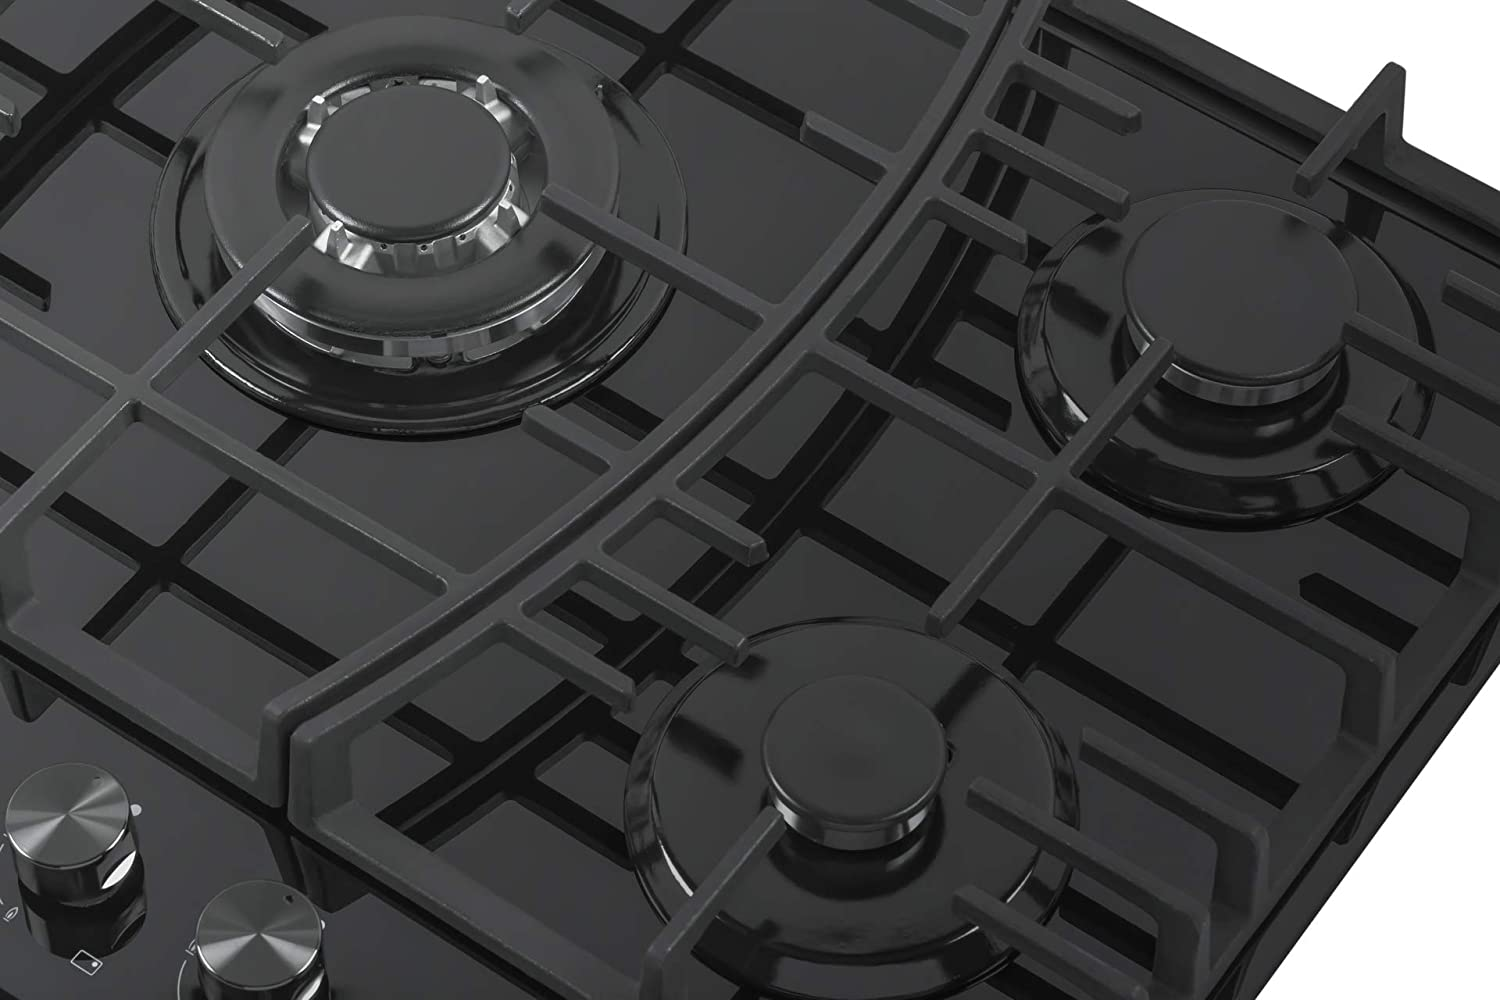 Empava 30 Black Tempered Glass 5 Italy Sabaf Burners Stove Top Gas Cooktop EMPV-30GC918